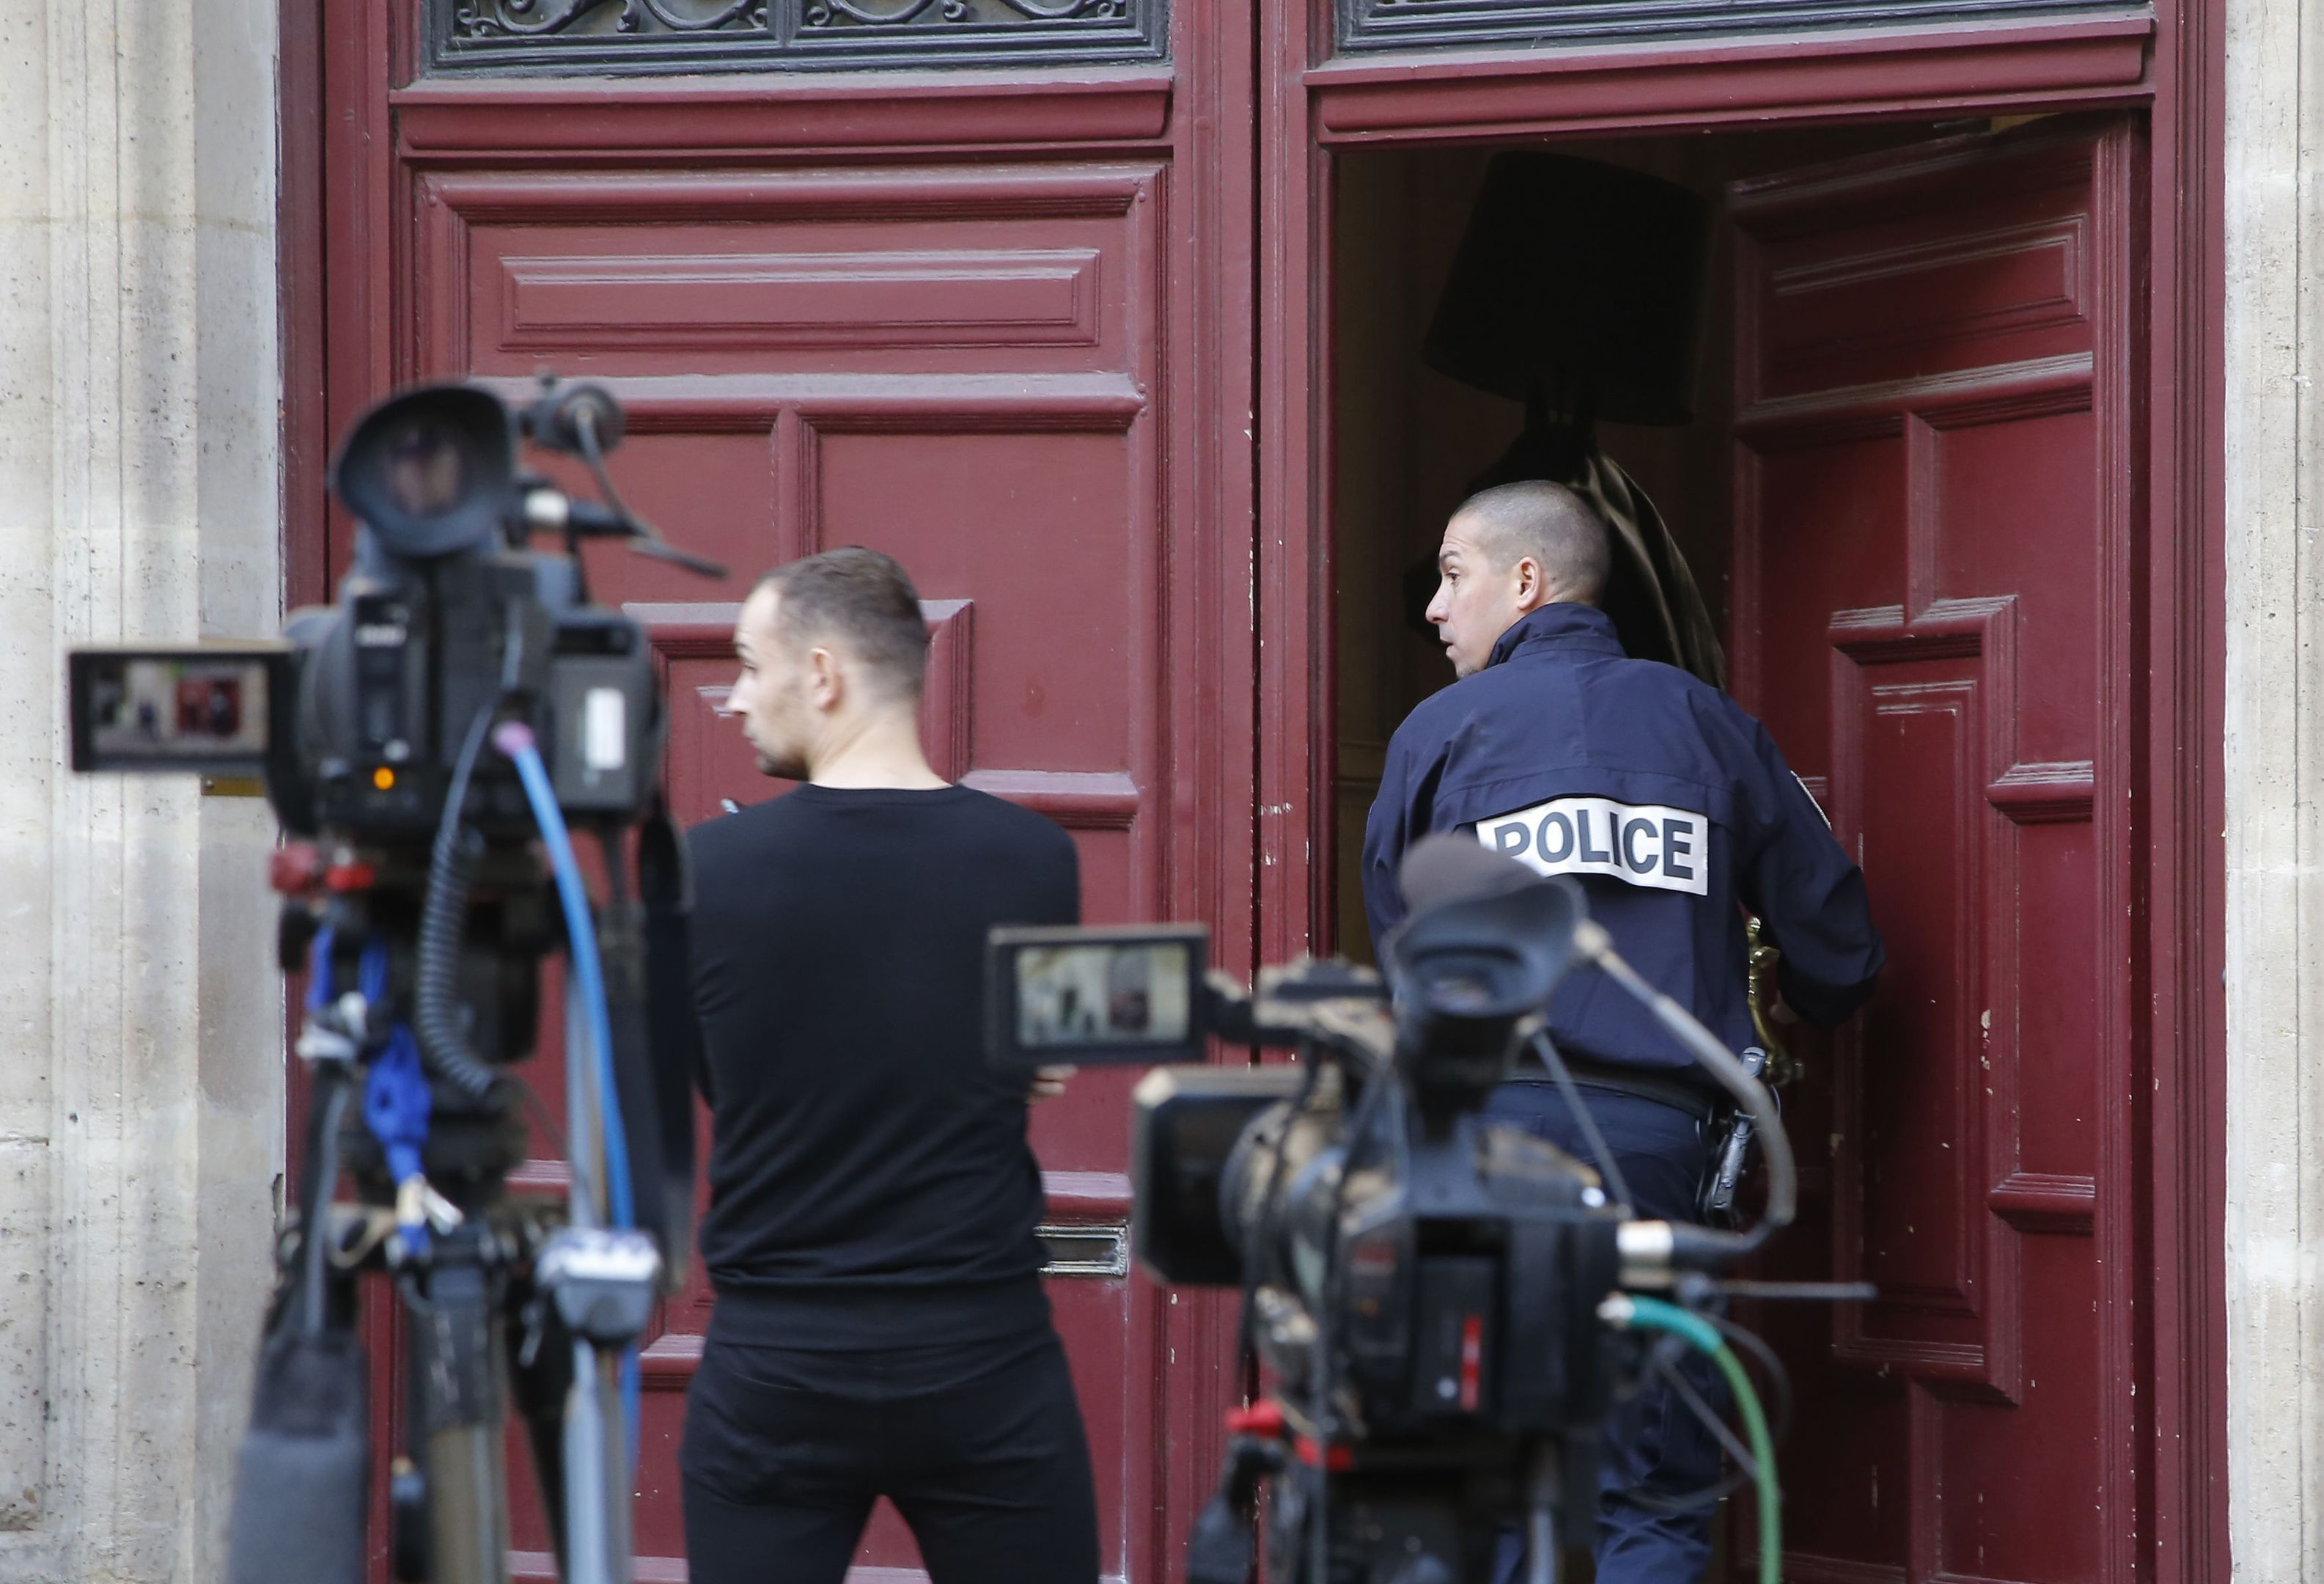 A French police officer enters the residence of Kim Kardashian West in Paris.